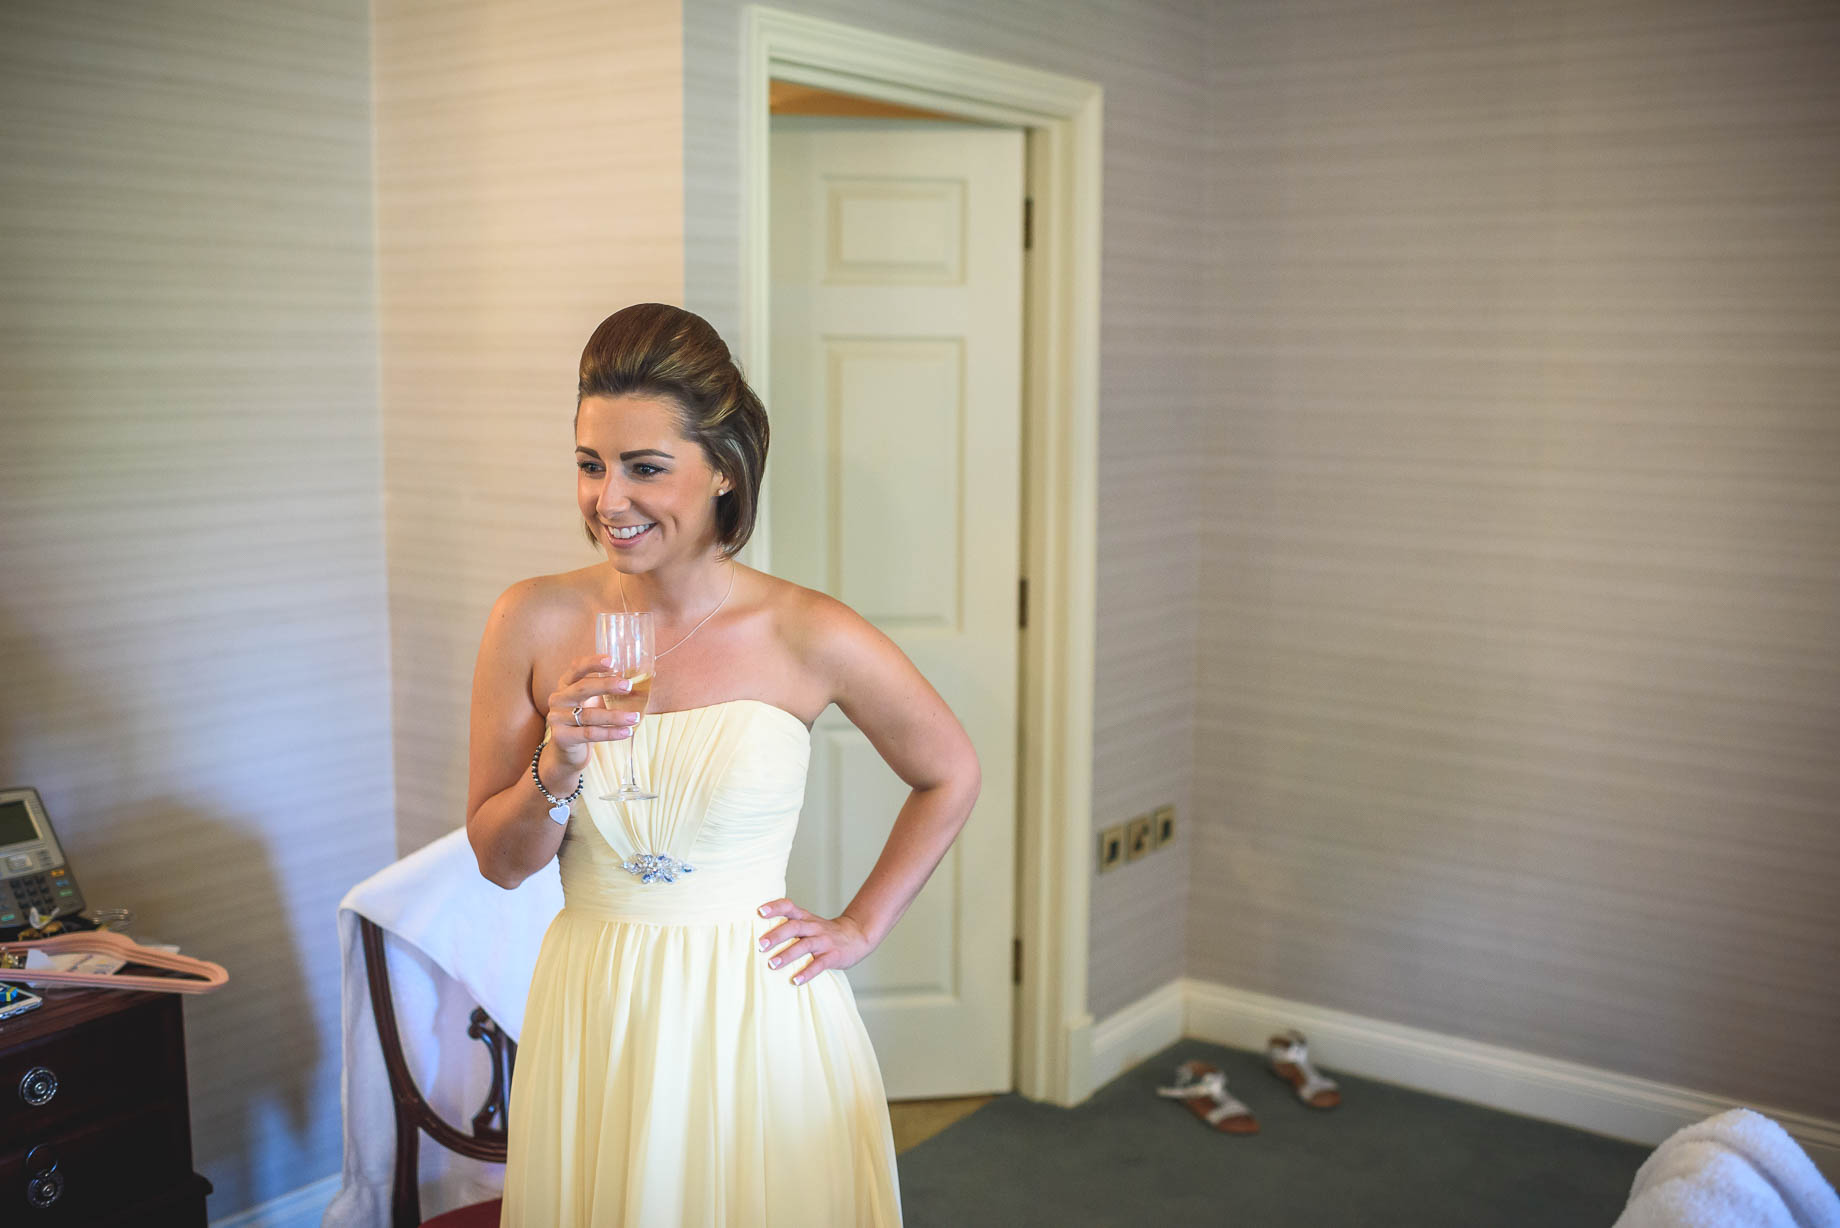 Luton Hoo wedding photography by Guy Collier Photography - Lauren and Gem (43 of 178)